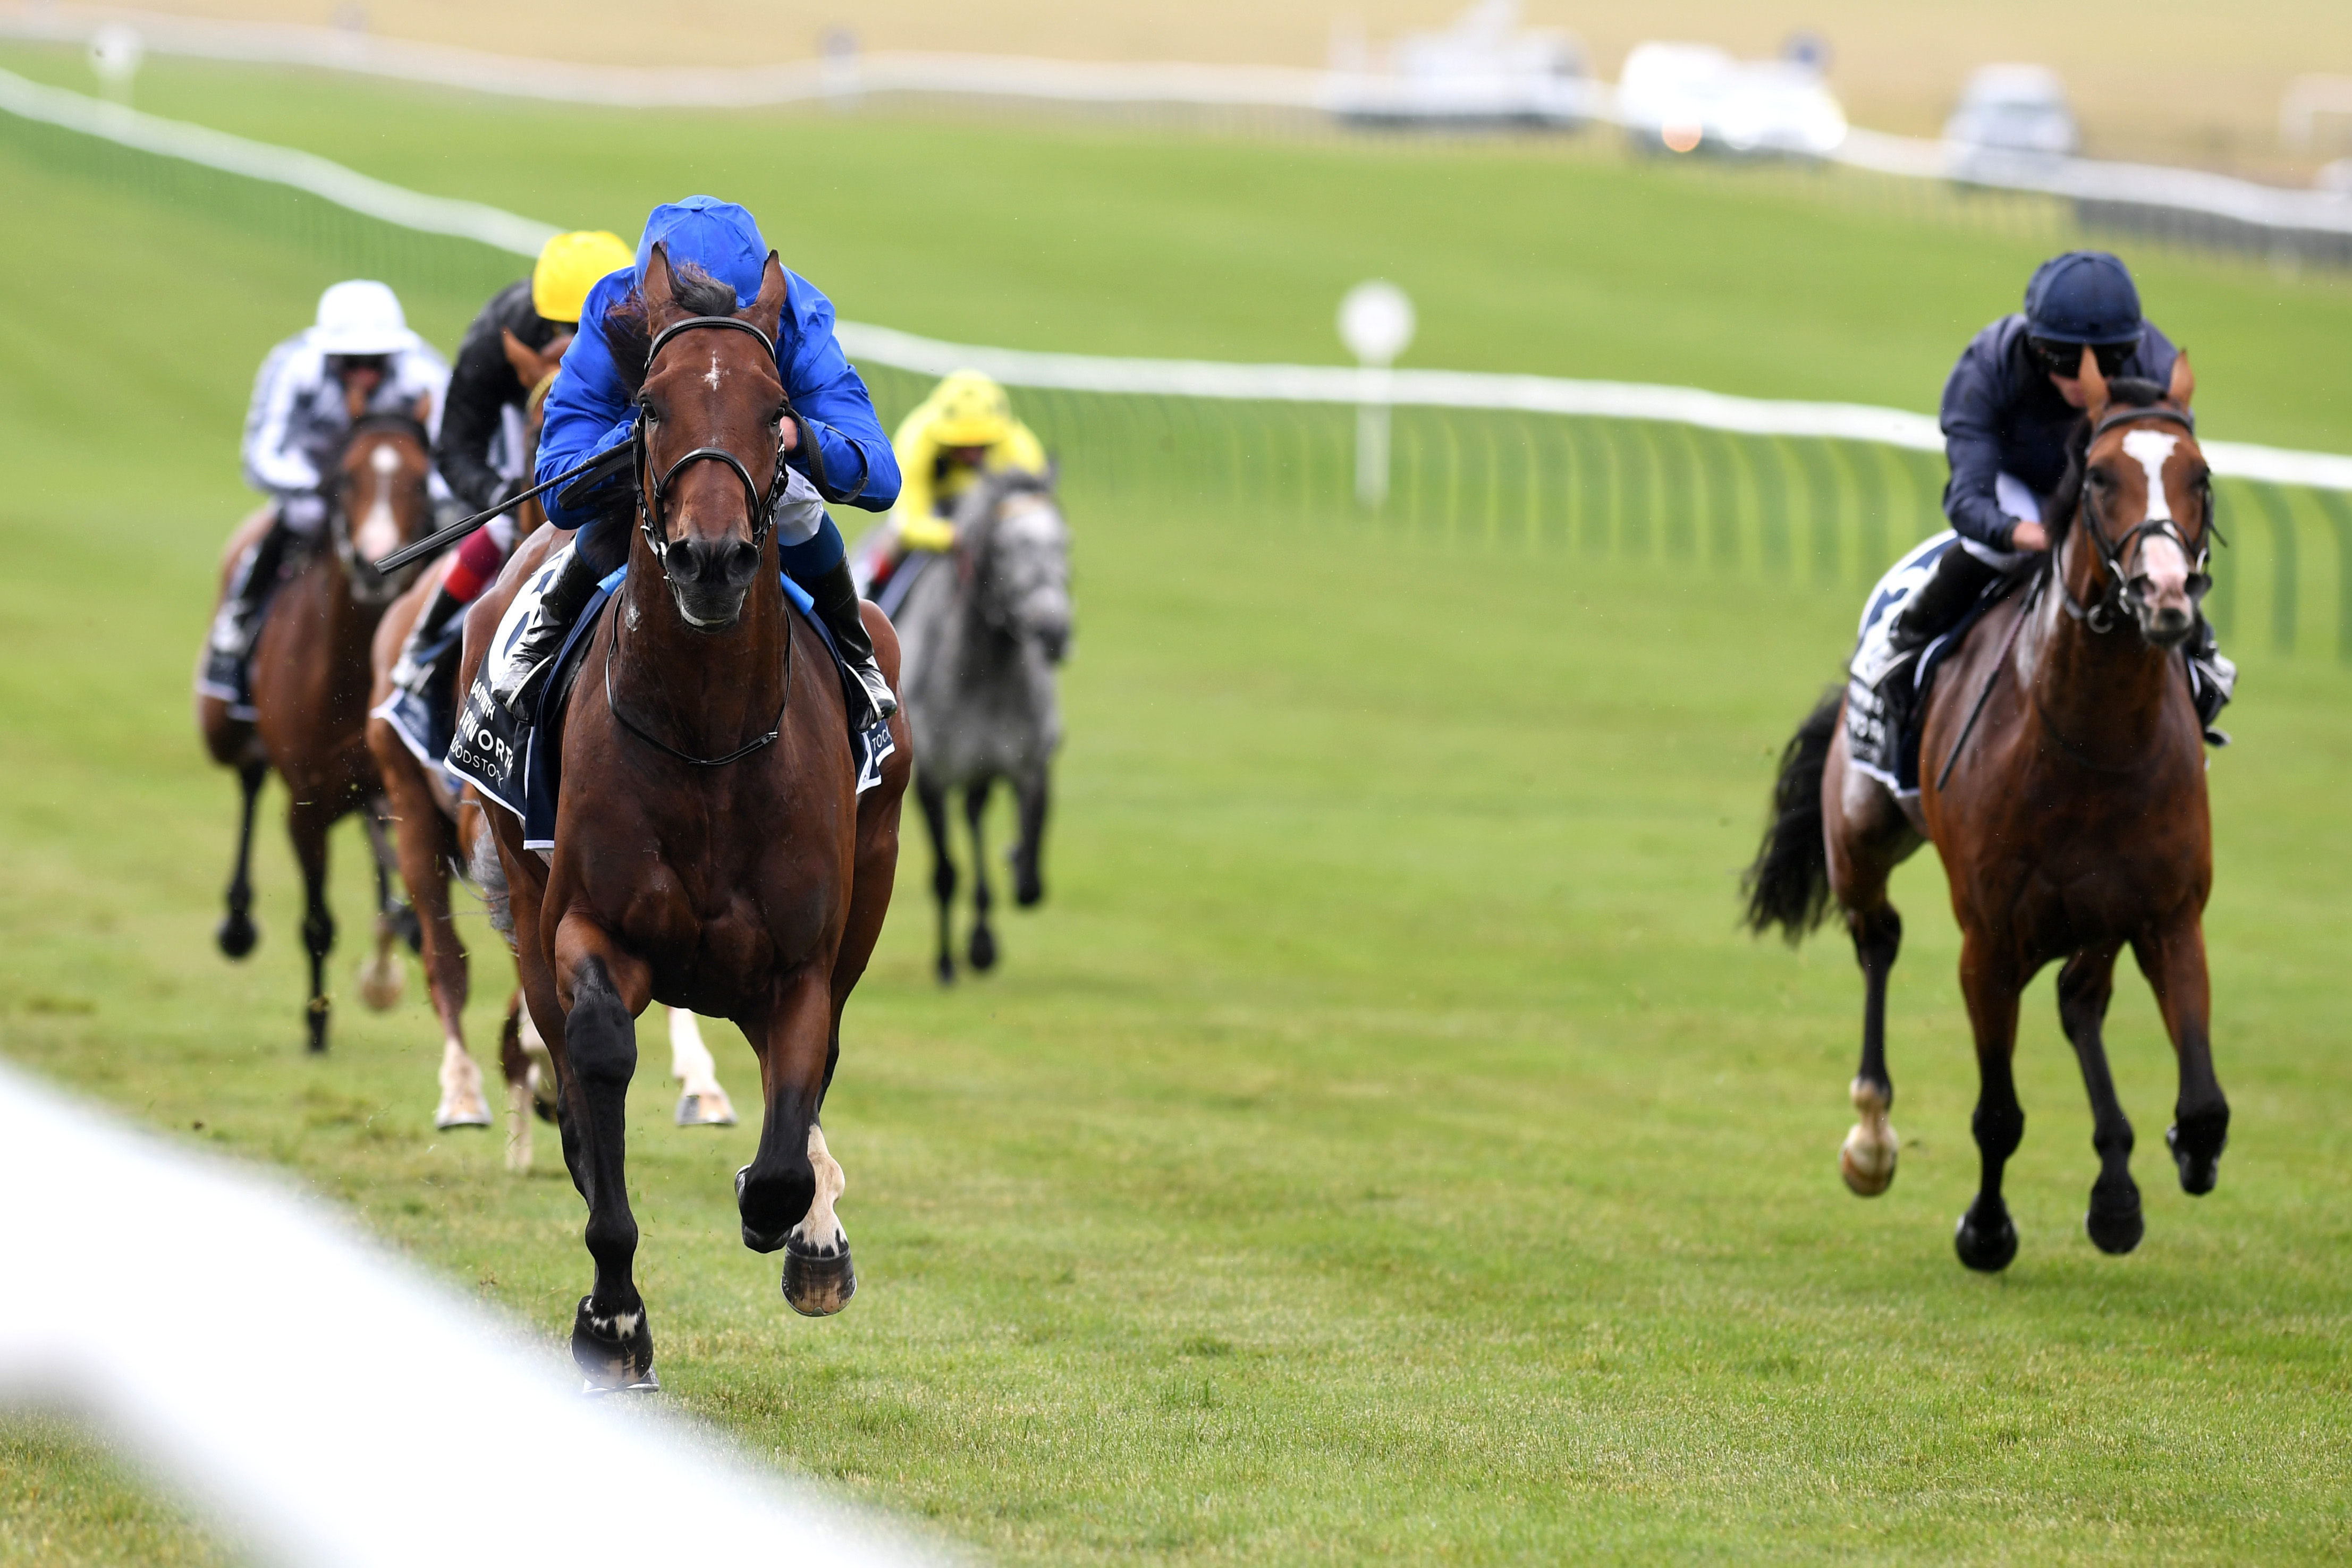 Coronation Cup (Gr1) - Ghaiyyath a (enfin) conquis l'Angleterre